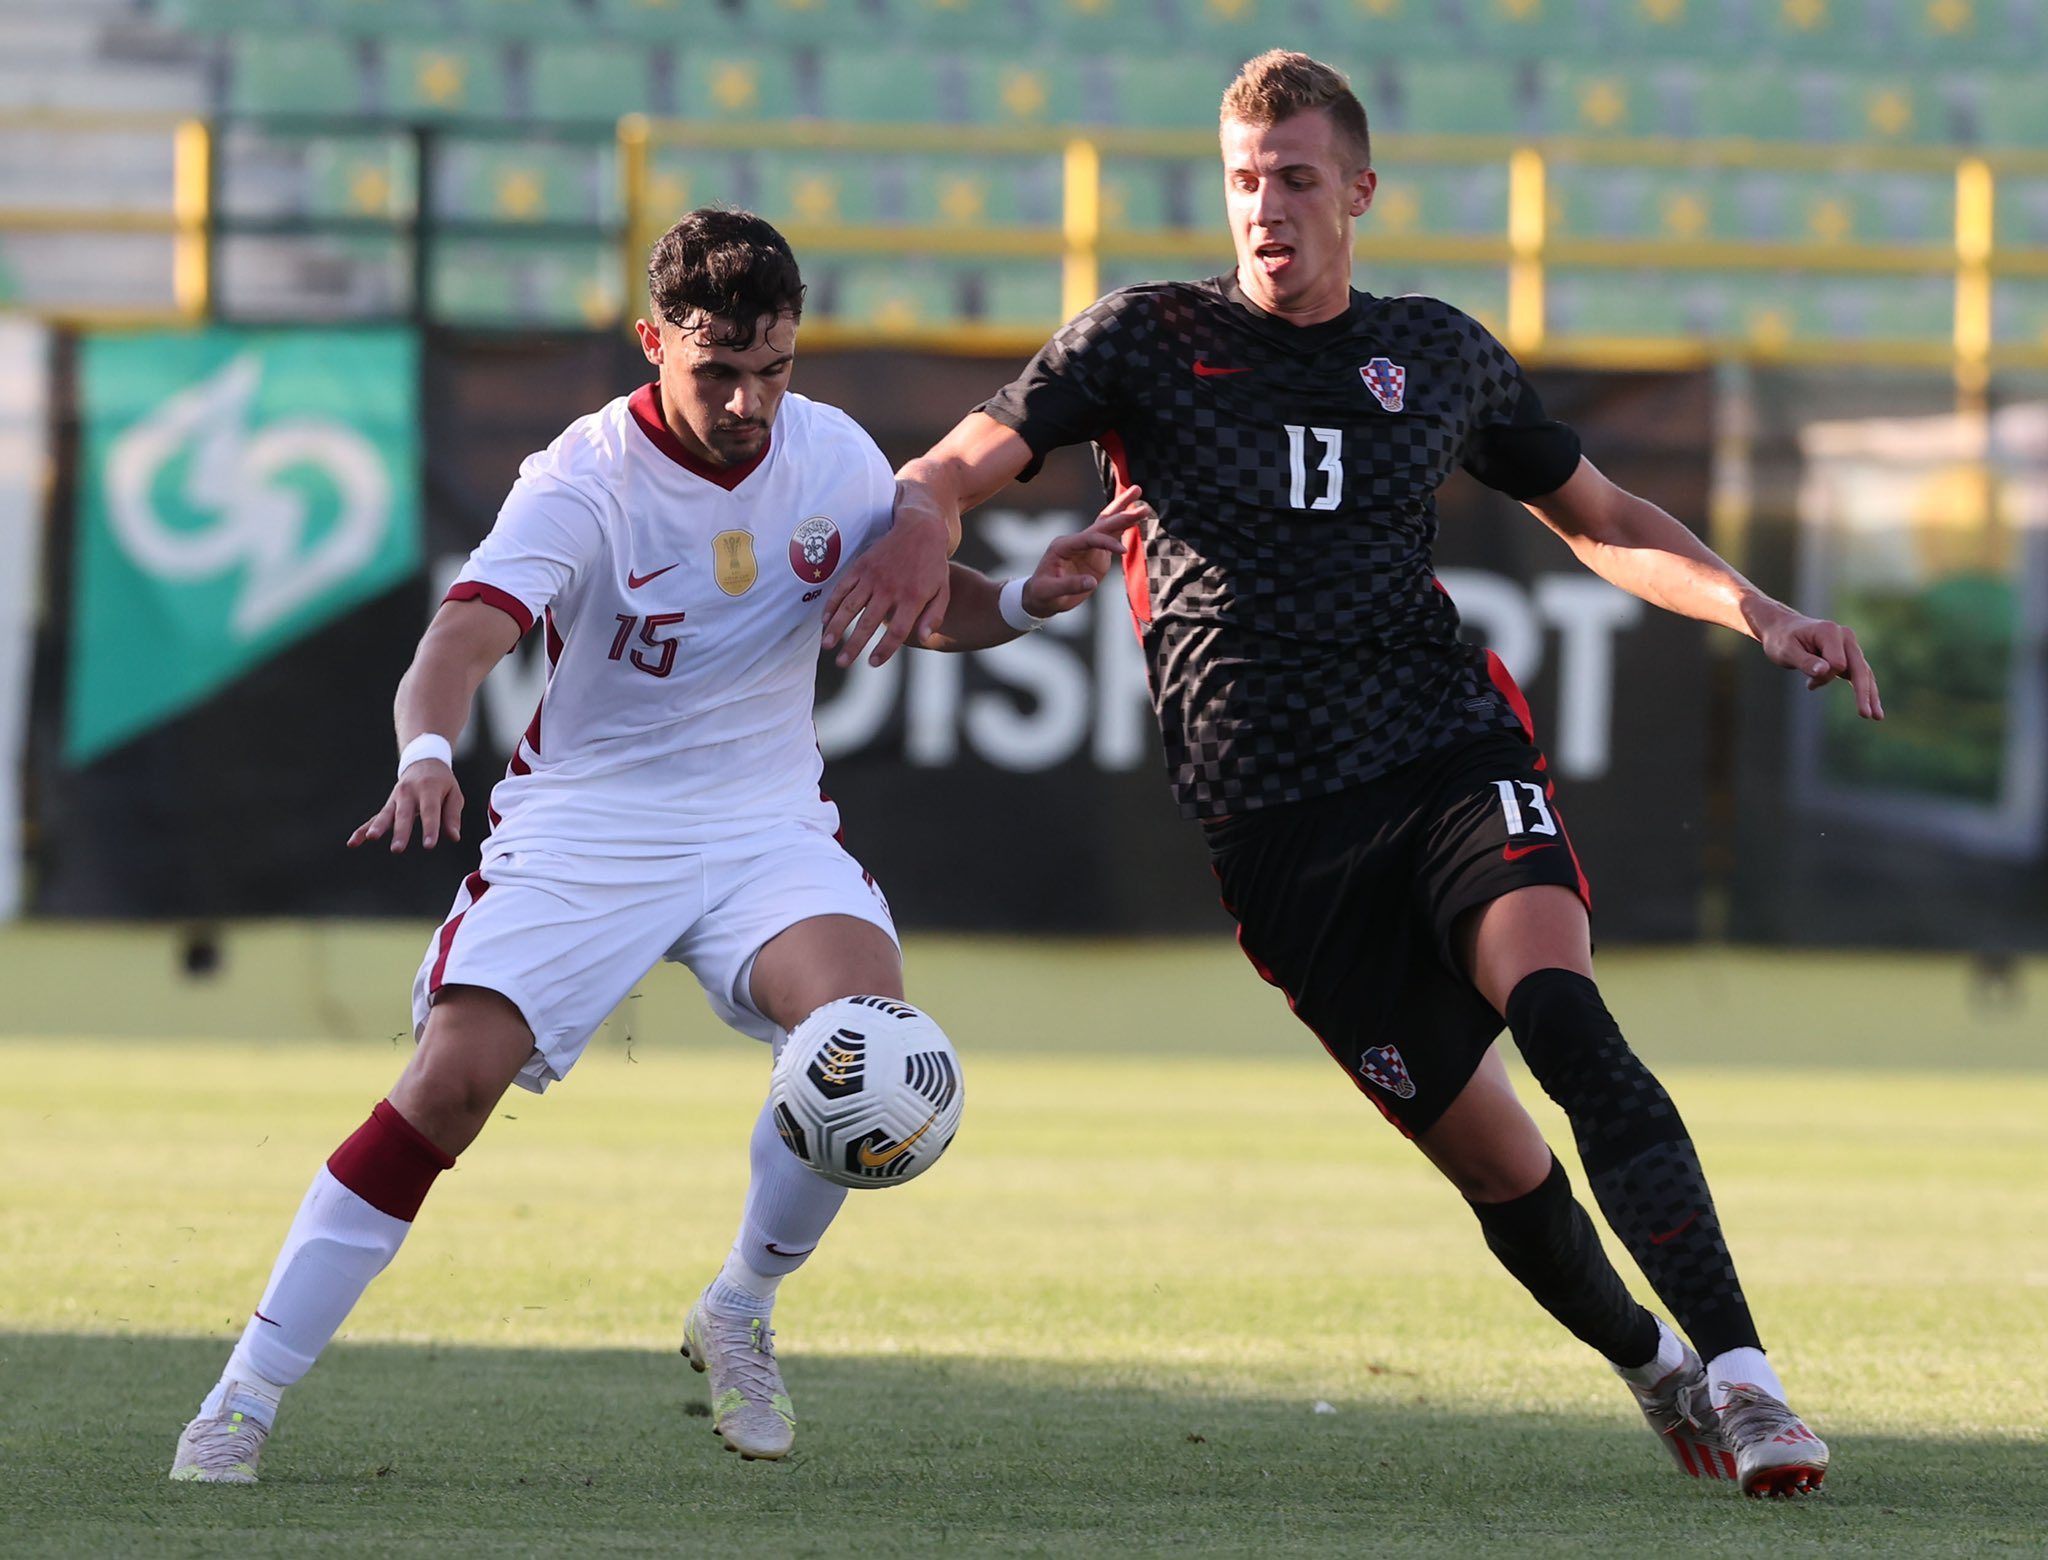 First National Team Defeat Croatia 3-1 in Friendly